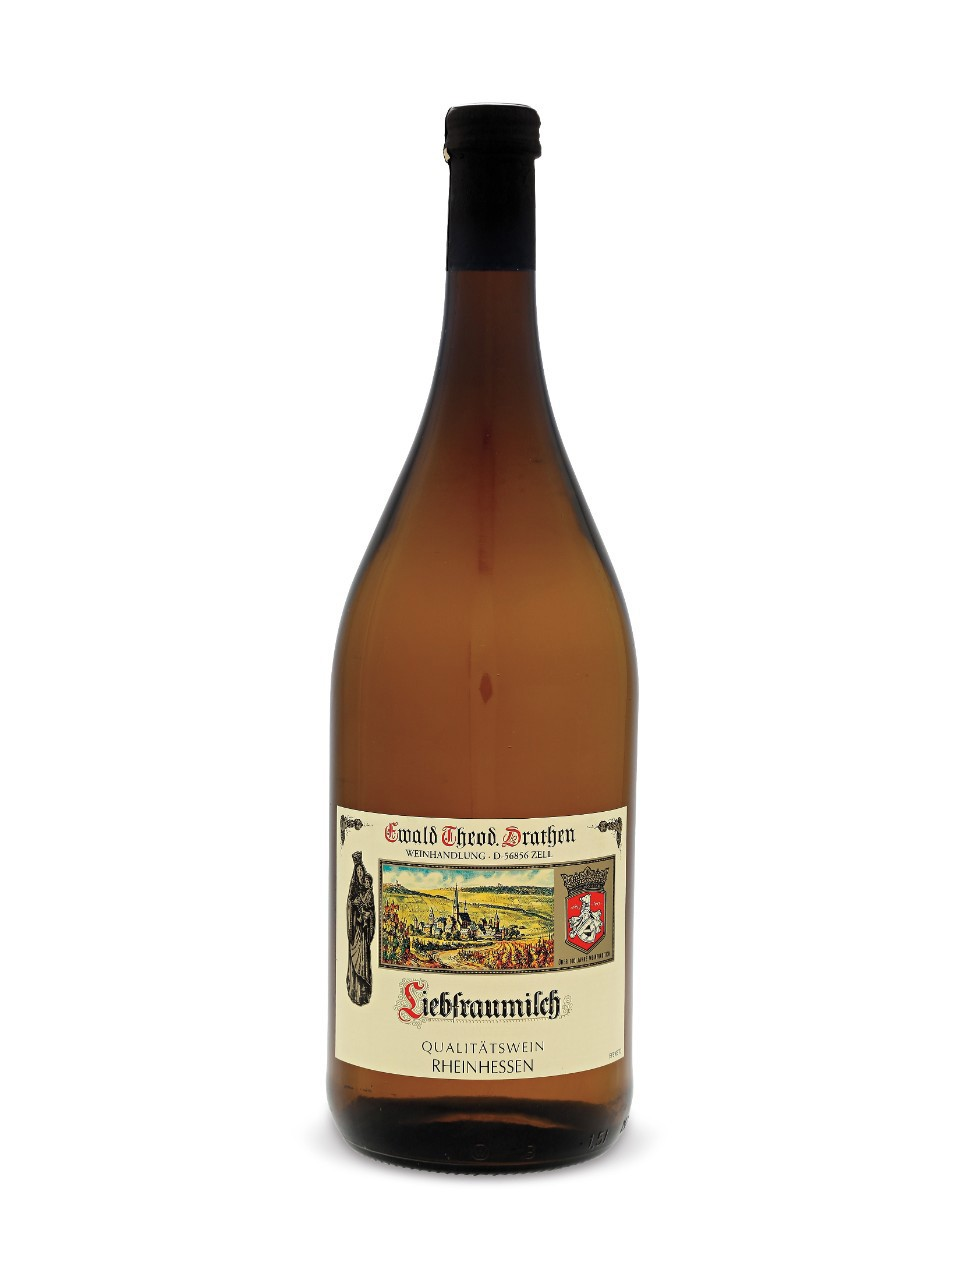 Liebfraumilch wine pairing asian food